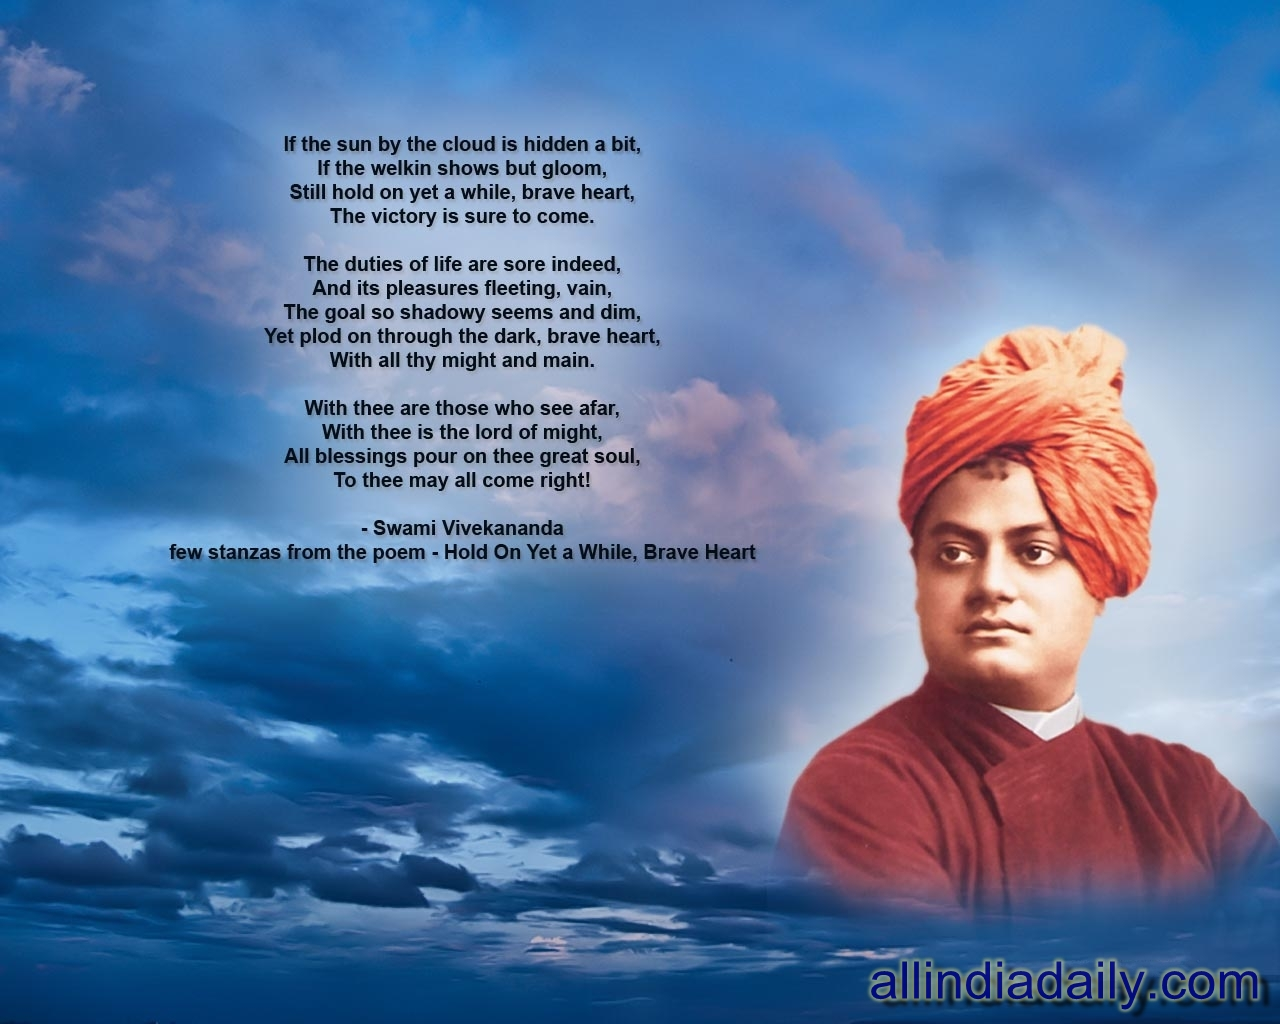 nimma girish swami vivekananda 39 s biography quotes and